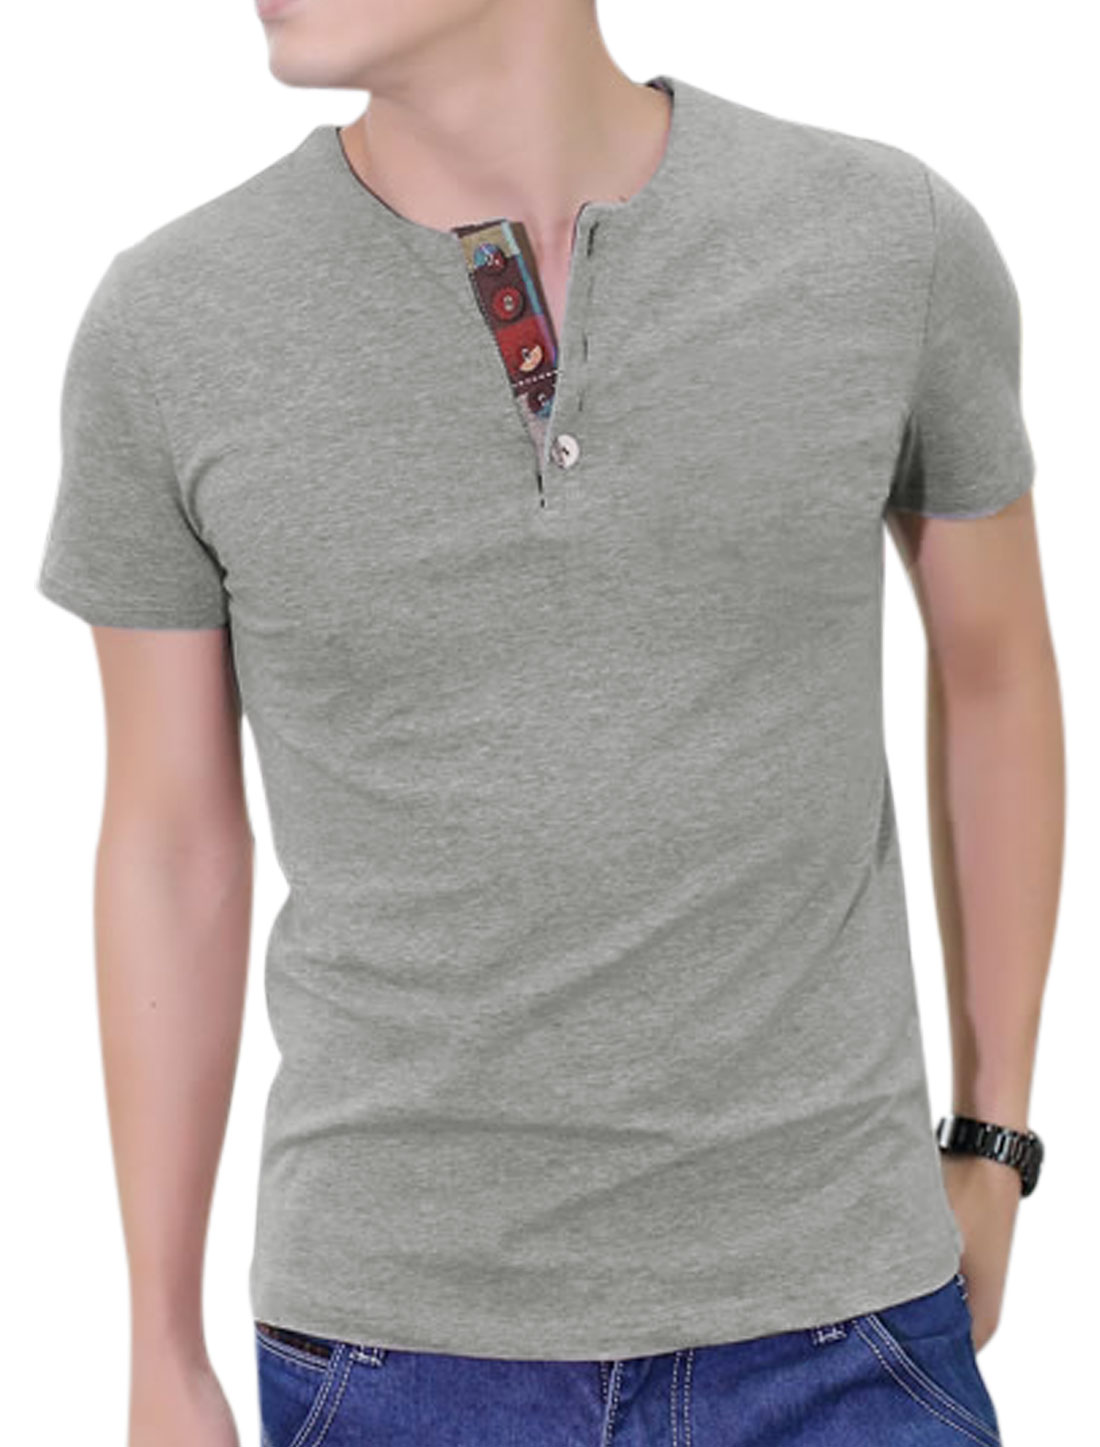 Pullover Round Neck Short Sleeve 1/4 Placket T-Shirt for Men Gray M